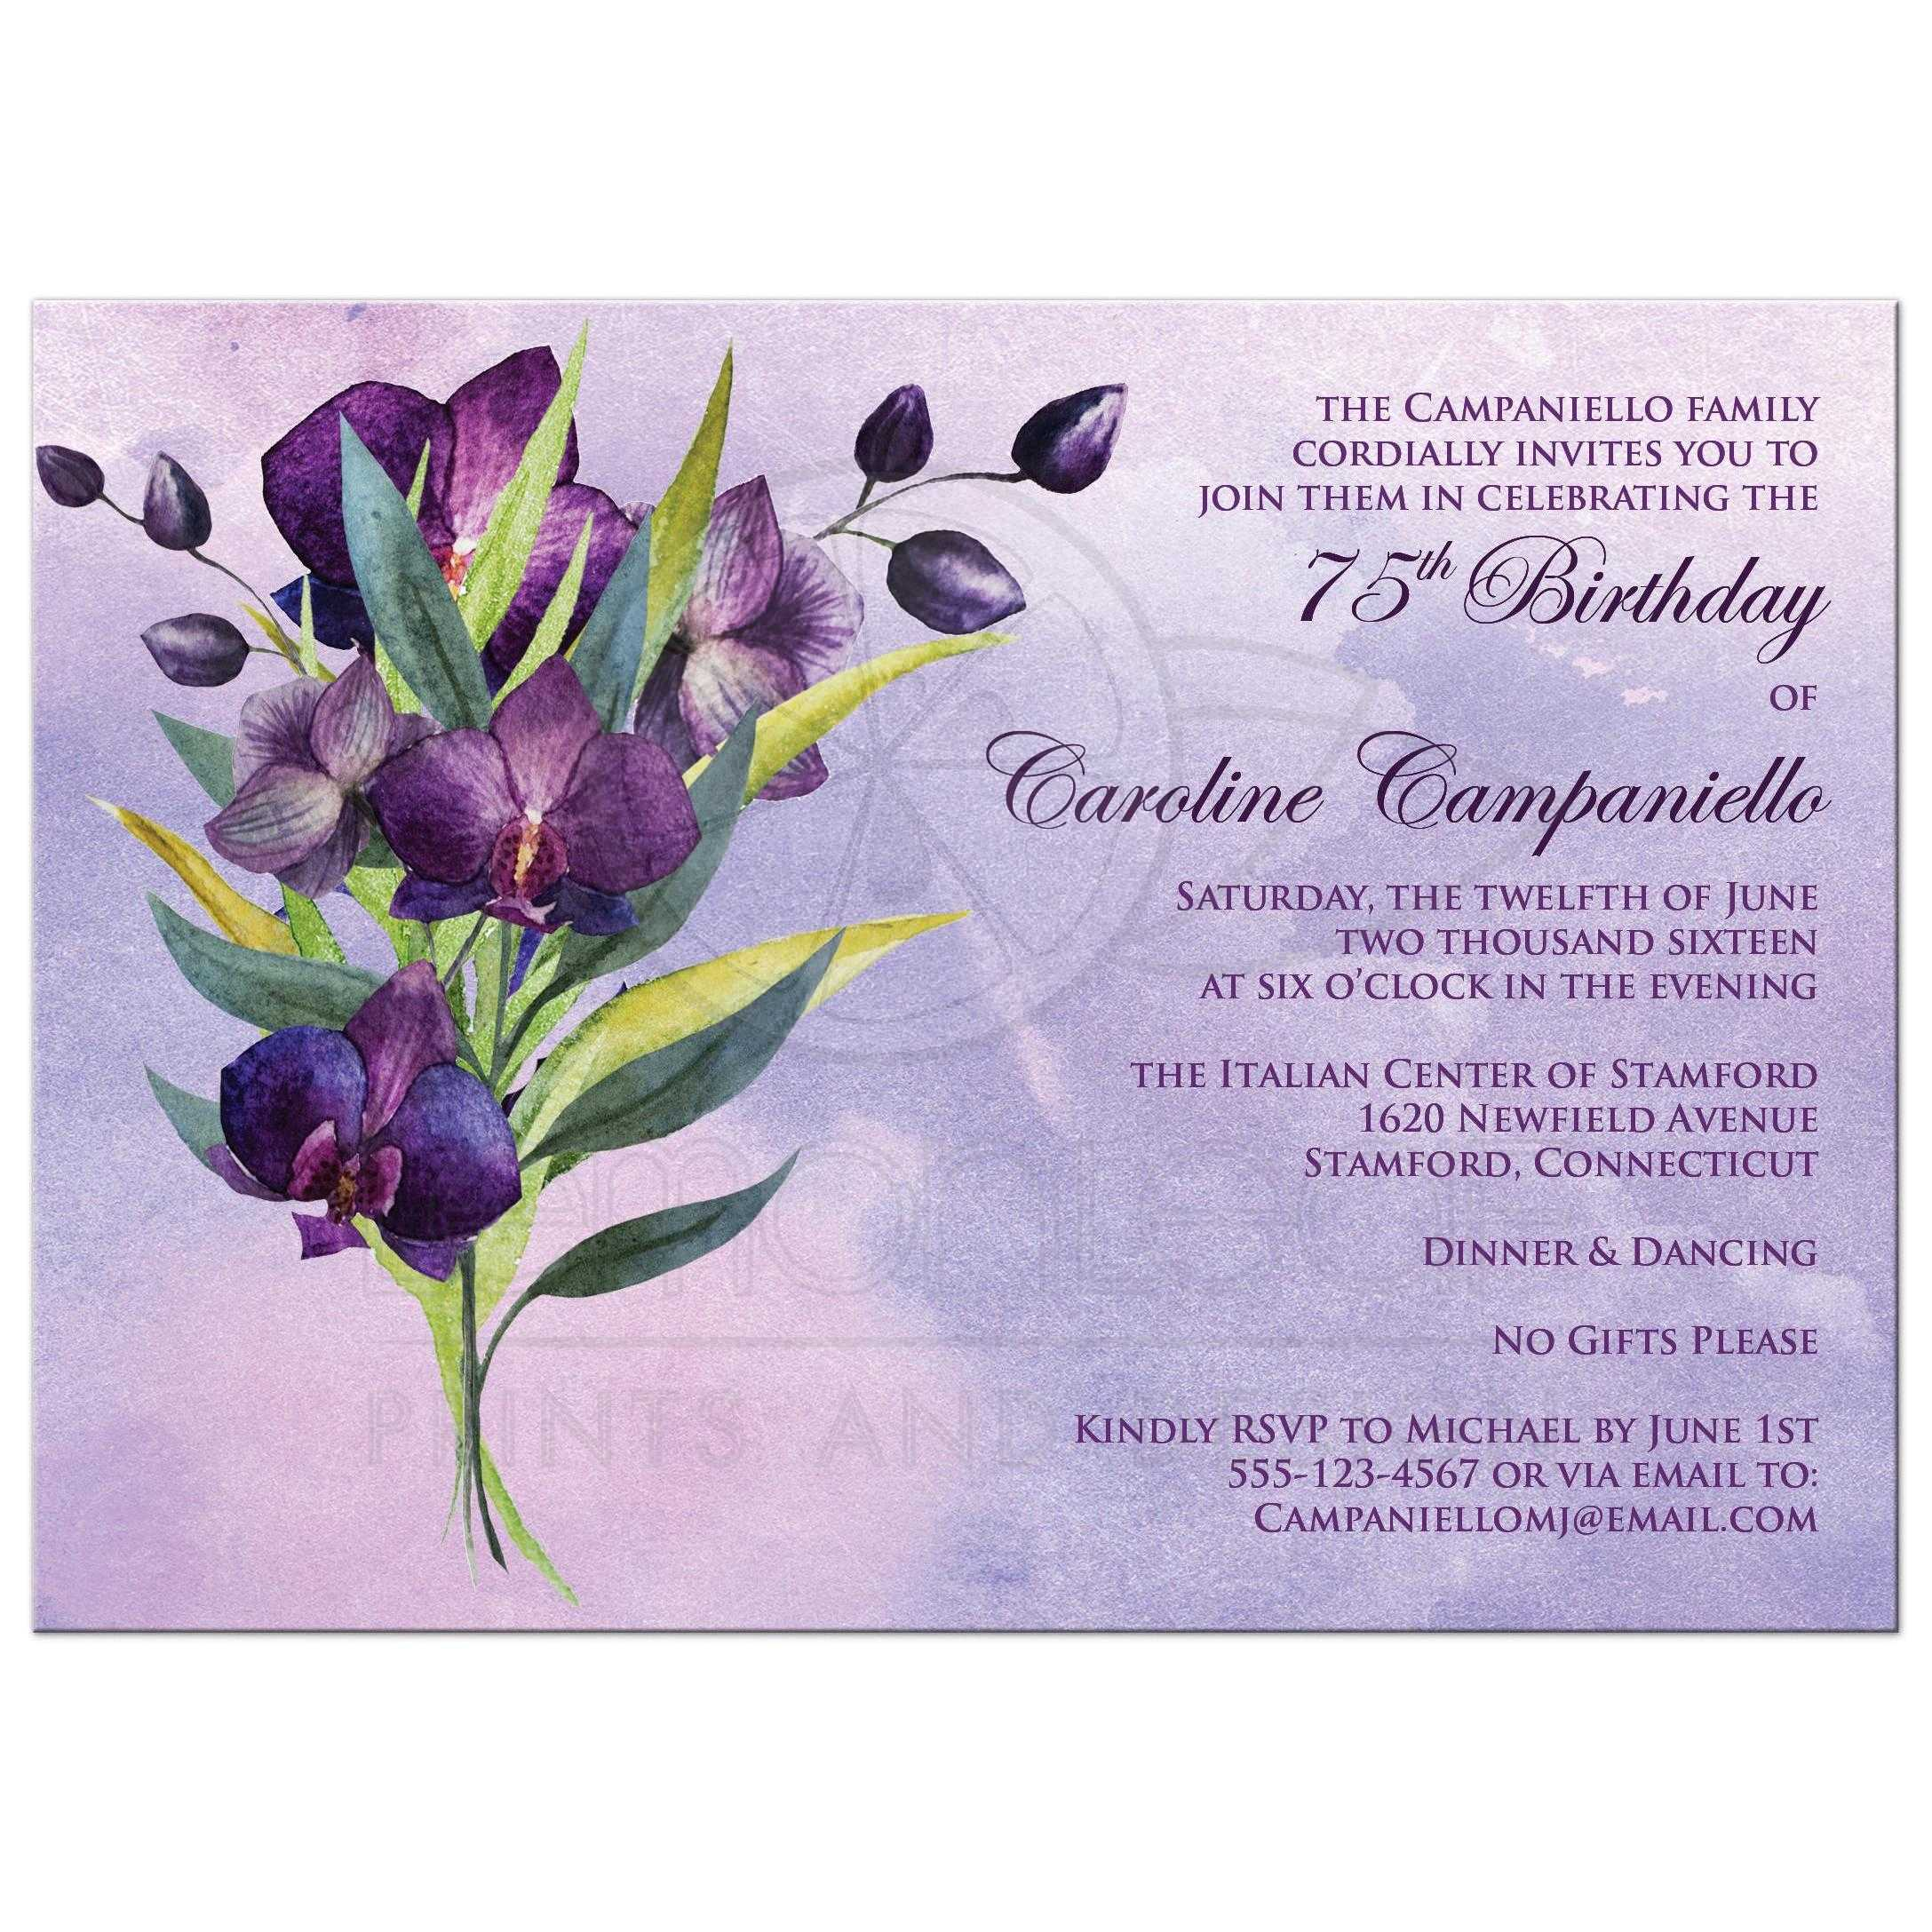 75th birthday party invitation purple orchids green foliage great purple orchids watercolor 75th birthday party invitation with green and yellow foliage stopboris